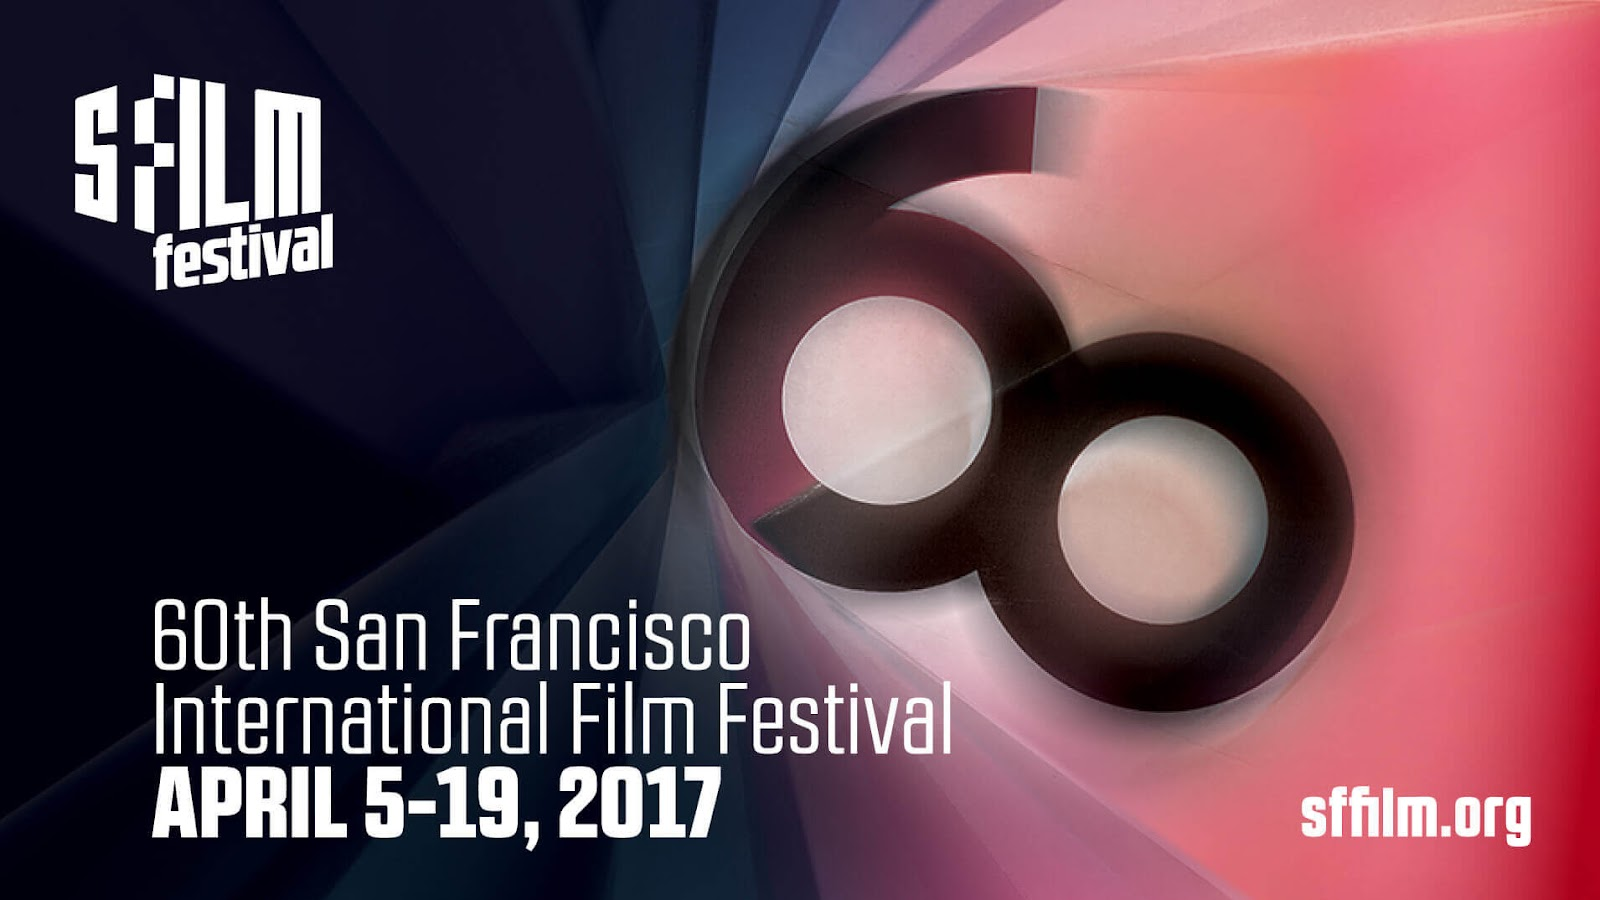 The 60th San Francisco International Film Festival